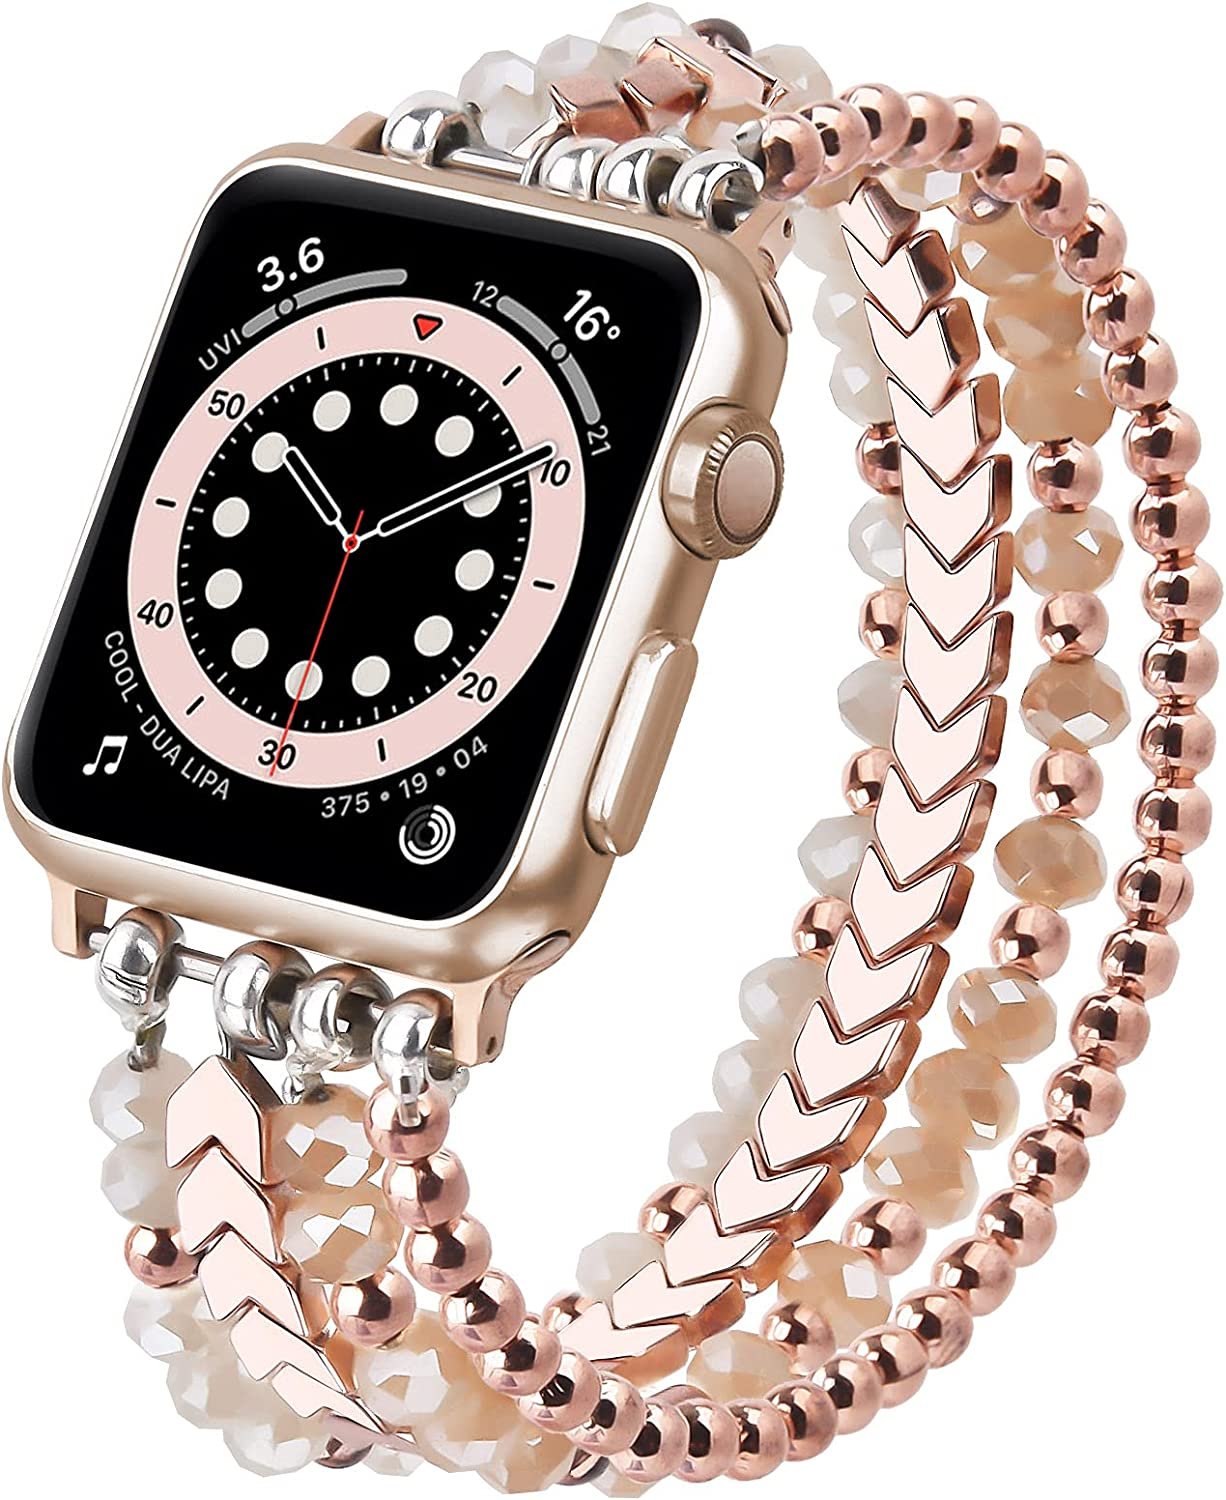 MOFREE Beaded Bracelet Compatible for Apple Watch Band 40mm/38mm Series SE/6/5/4/3/2/1 Women Fashion Handmade Elastic Stretch Strap for iWatch Bands Replacement (Rose Gold)